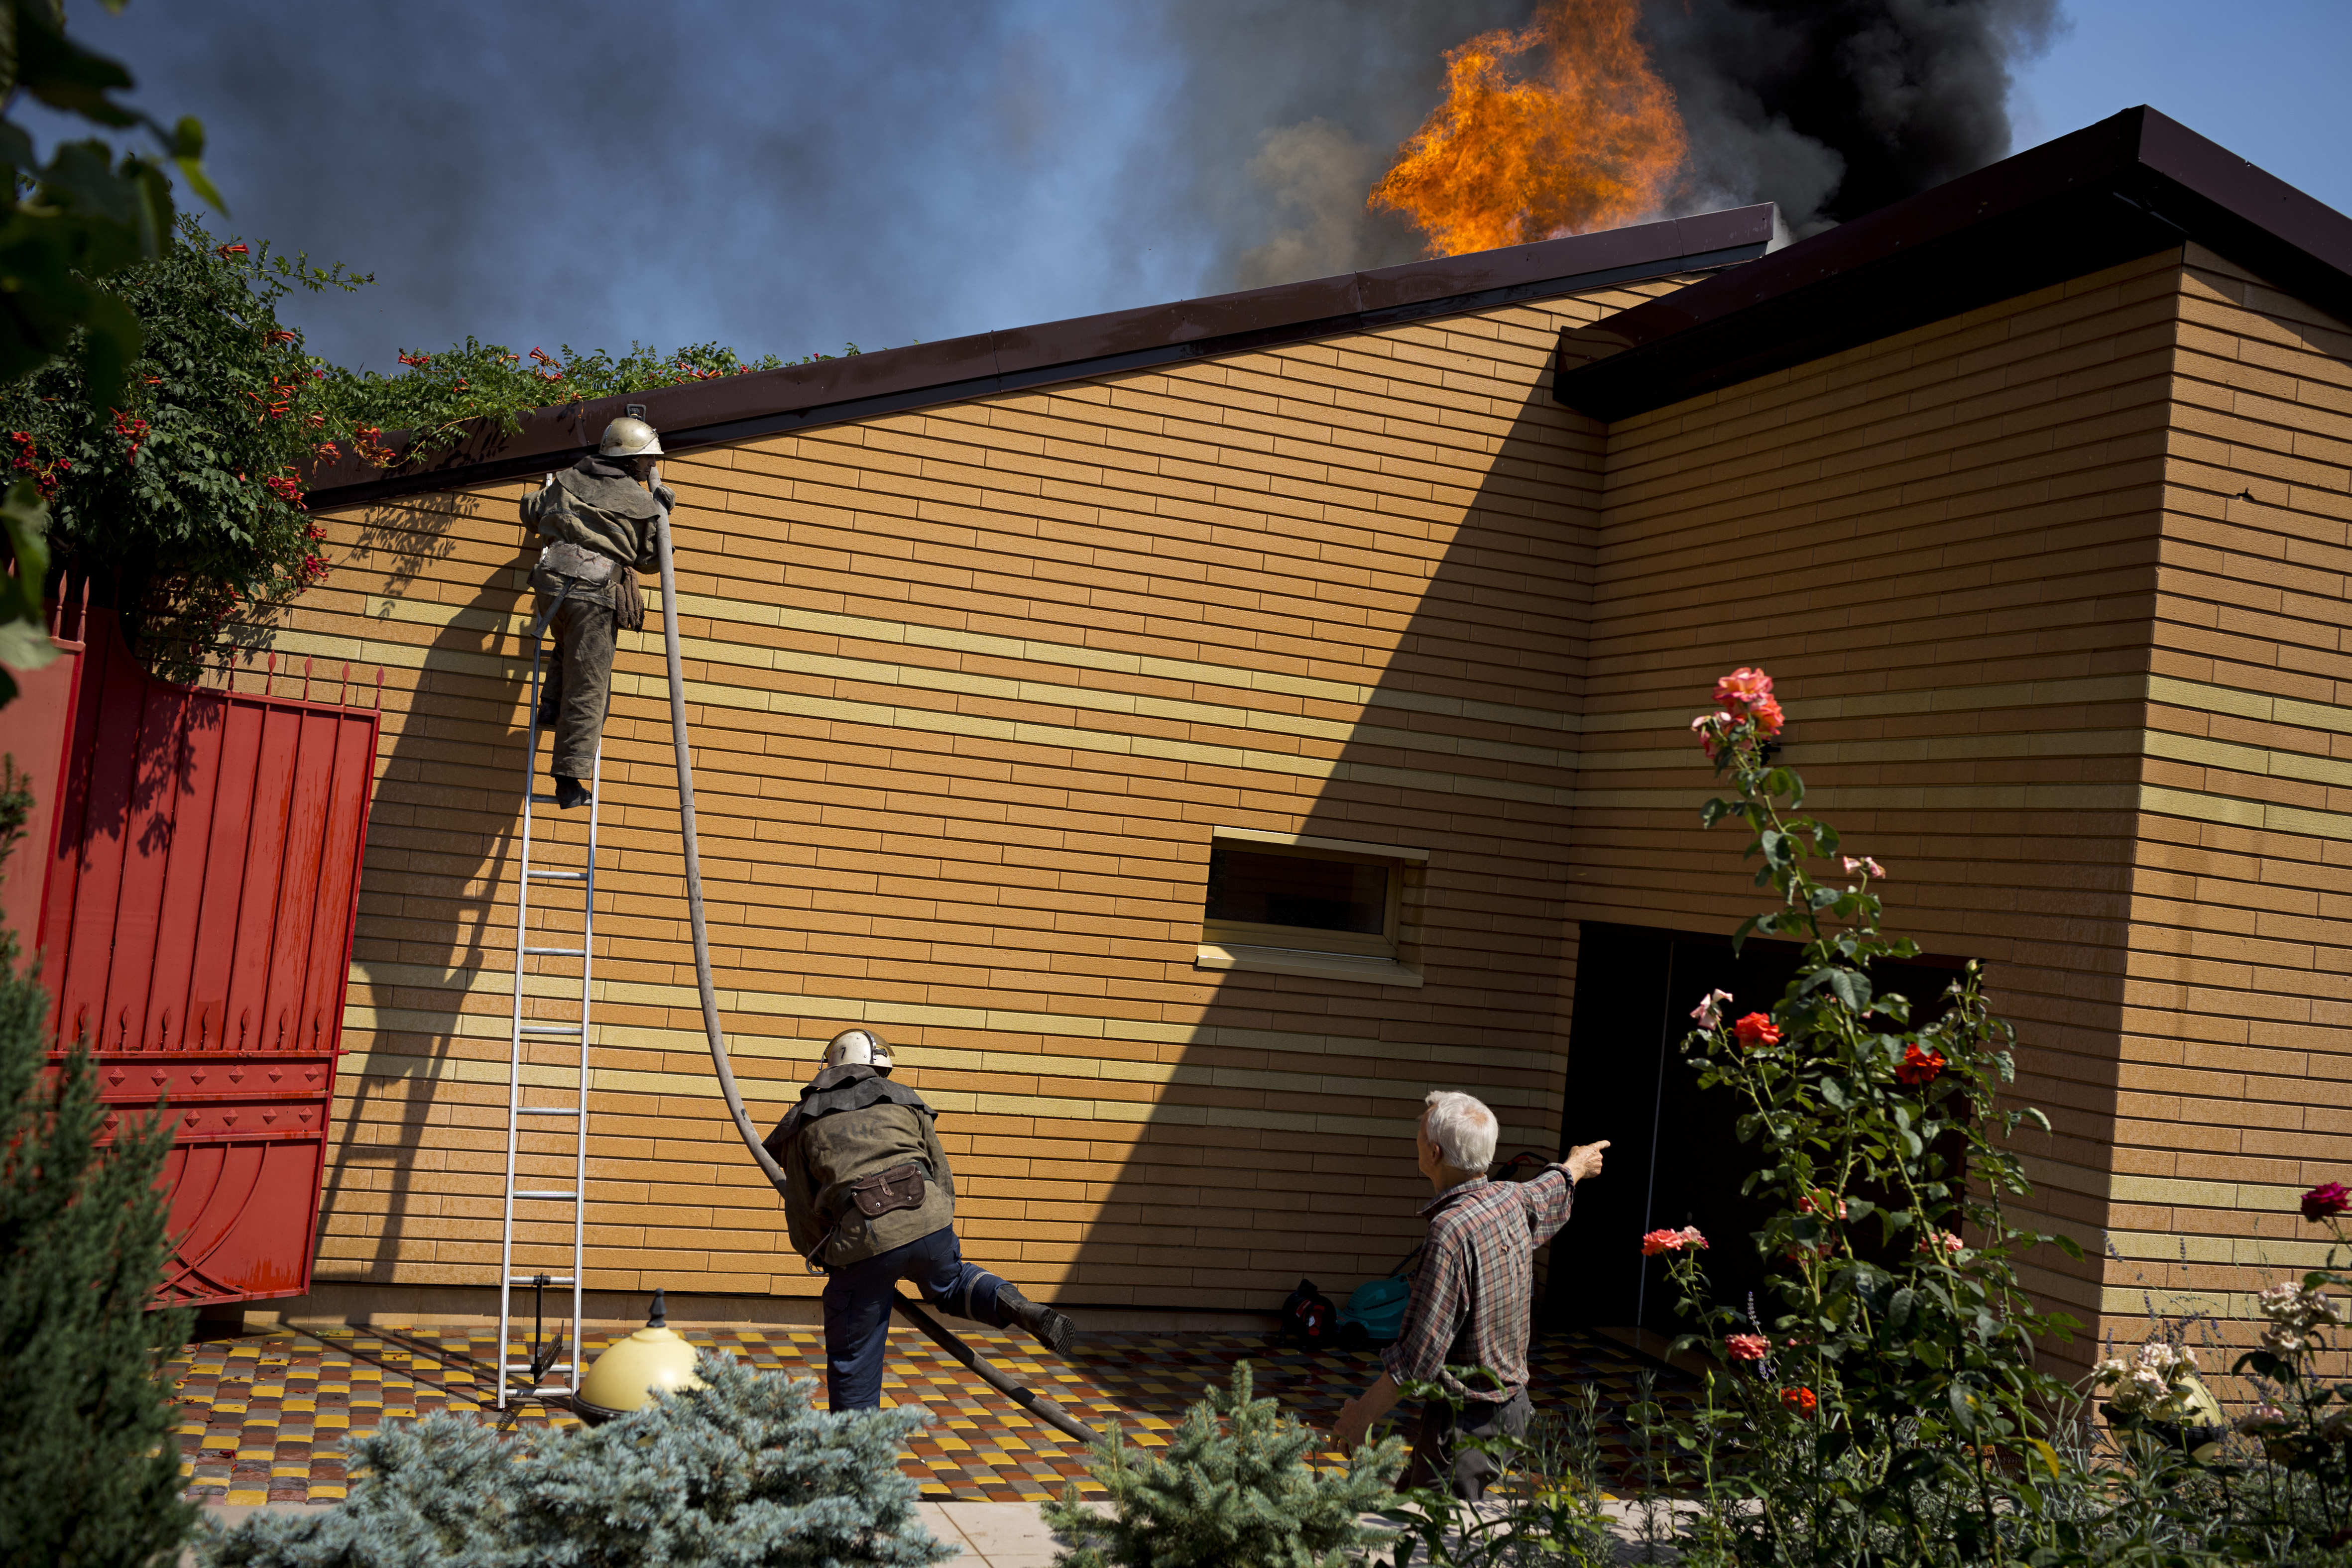 Firemen try to put out a fire in Voroshyloskyi, a residential area of Donetsk, after it was hit by artillery shelling on August 14, 2014 in Ukraine.